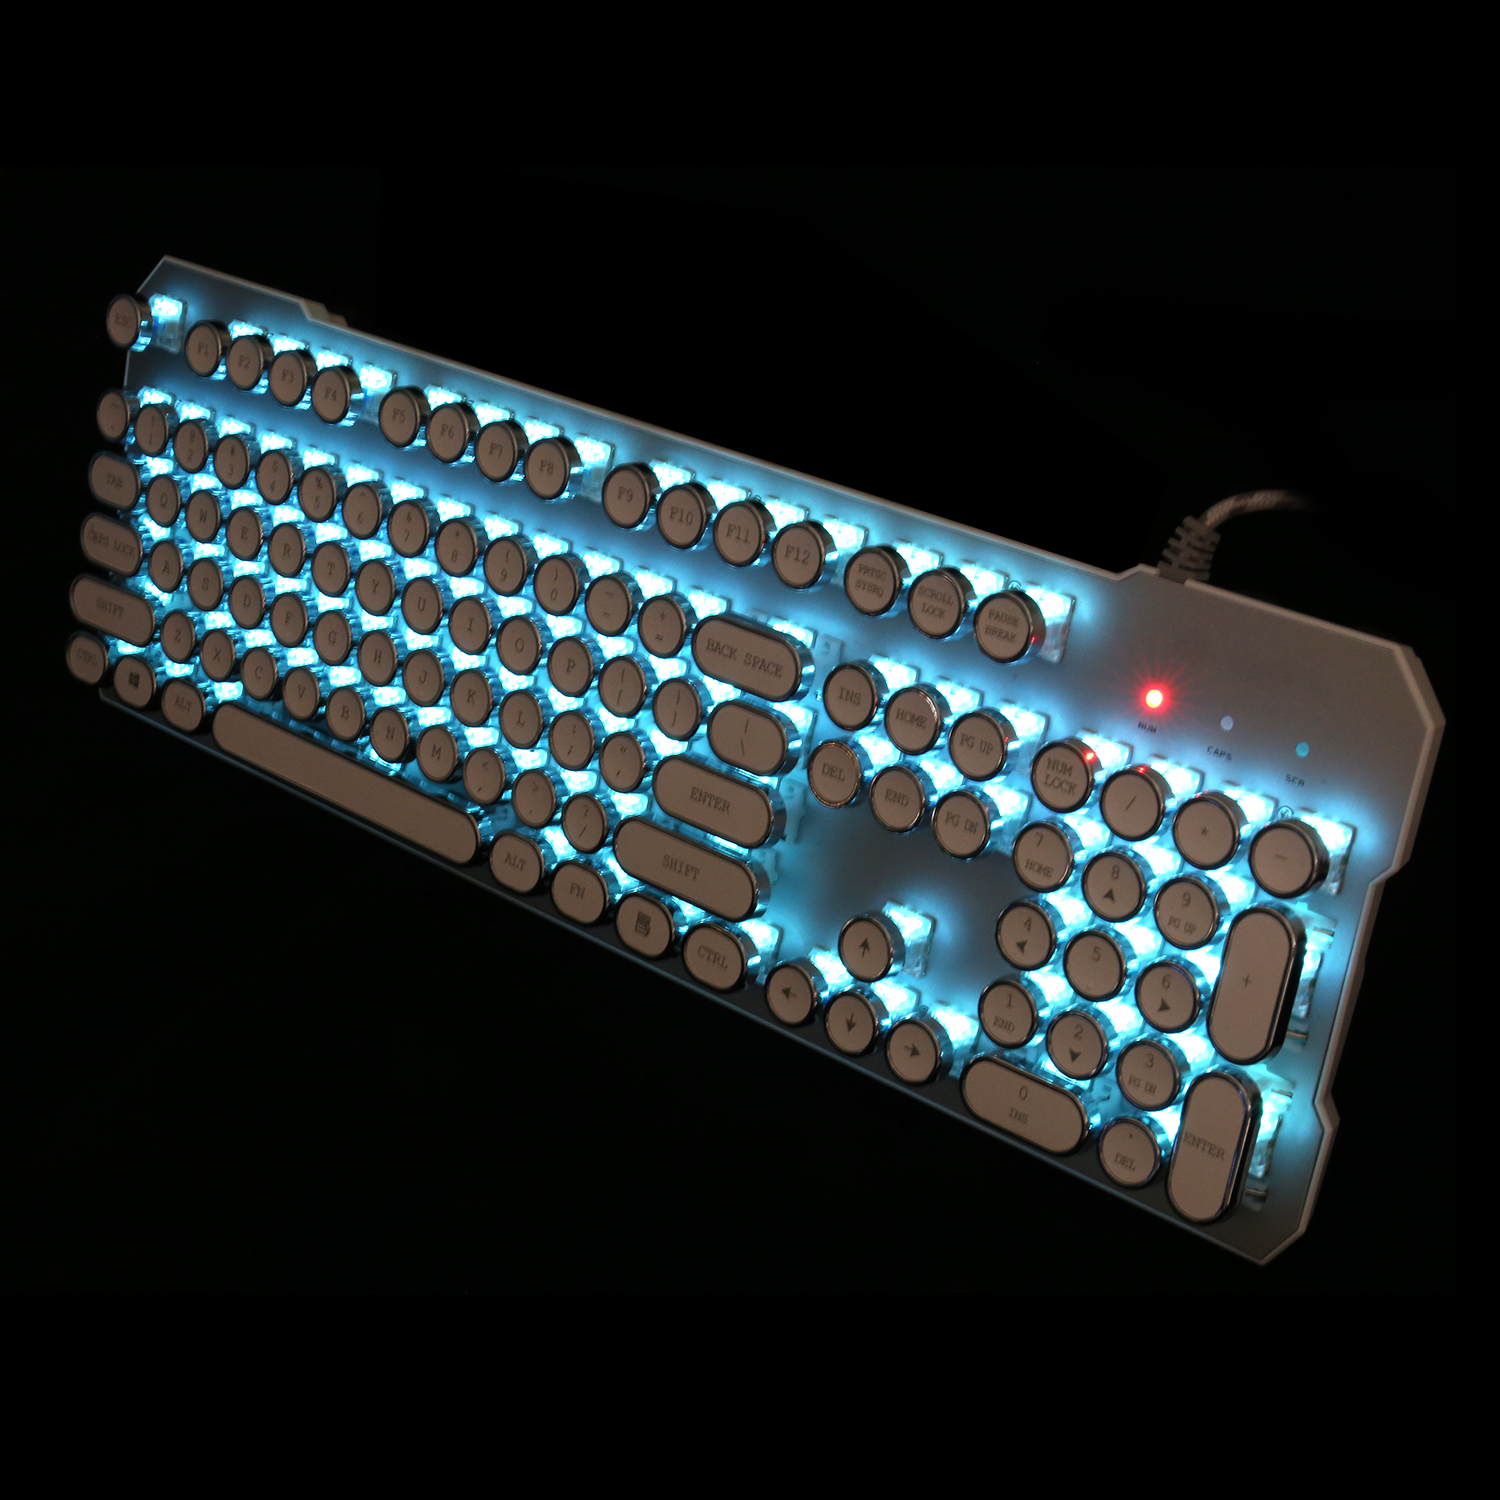 Hot selling Retro Punk Design Best Wired multimedia Mechanical keyboard with competitive price